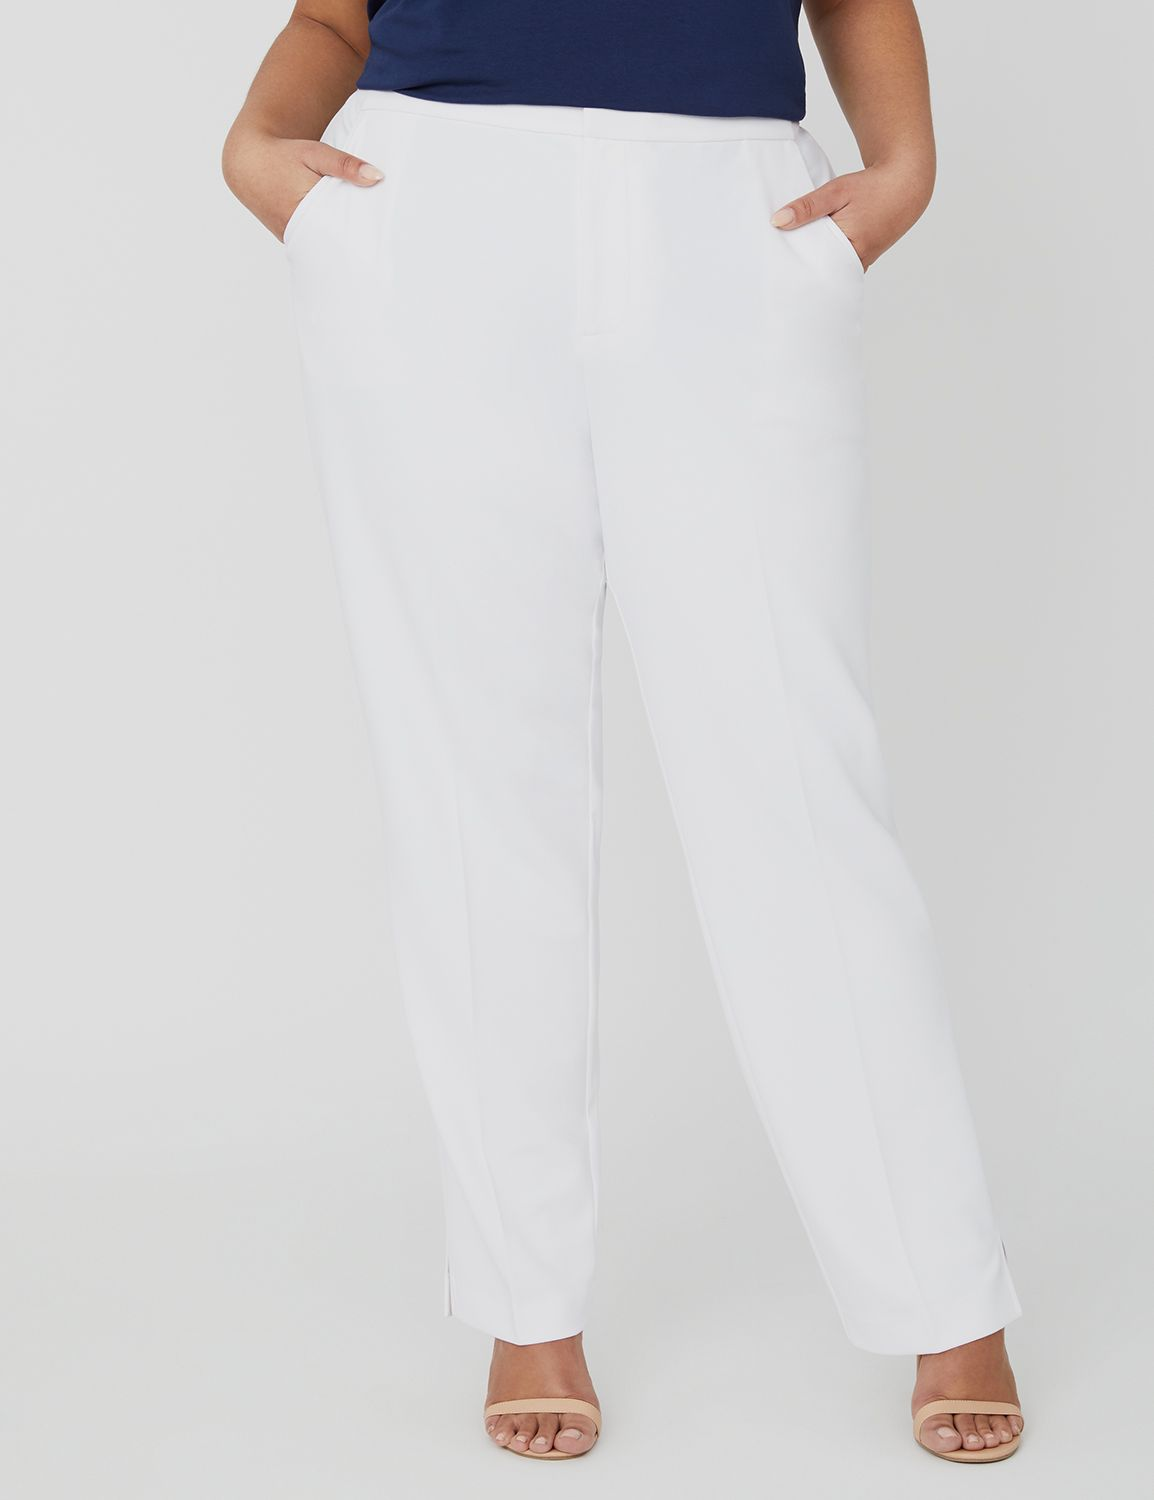 Black Label Soft Crepe Pant 1088525 Soft Crepe Pant with Elasti MP-300098653